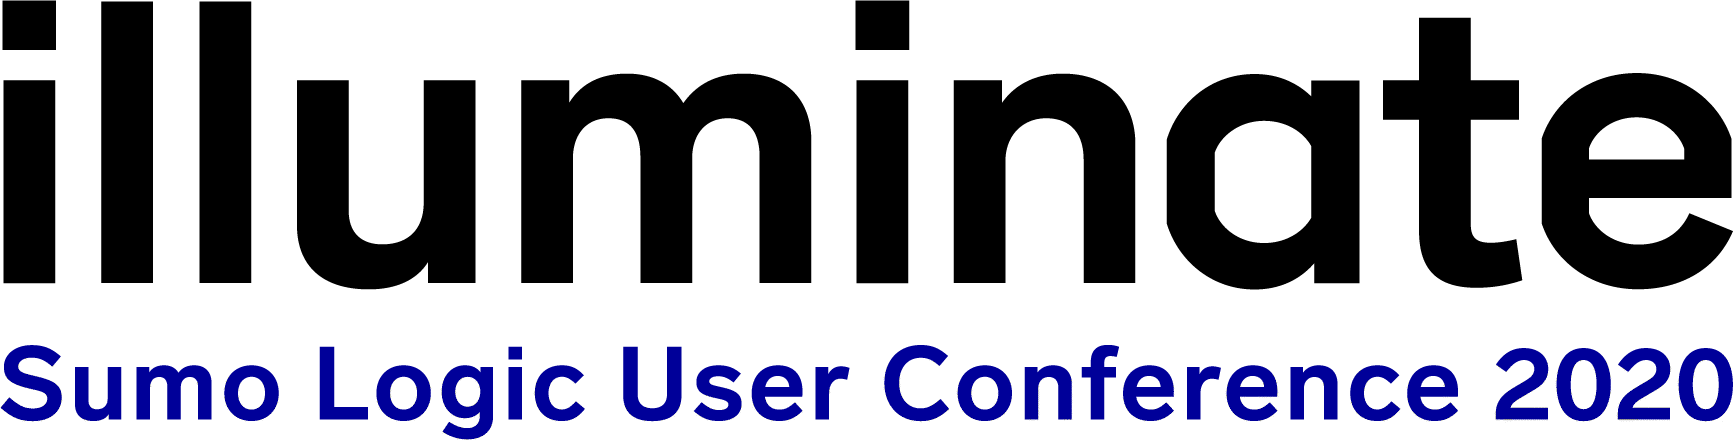 Illumninate User Conference 2020